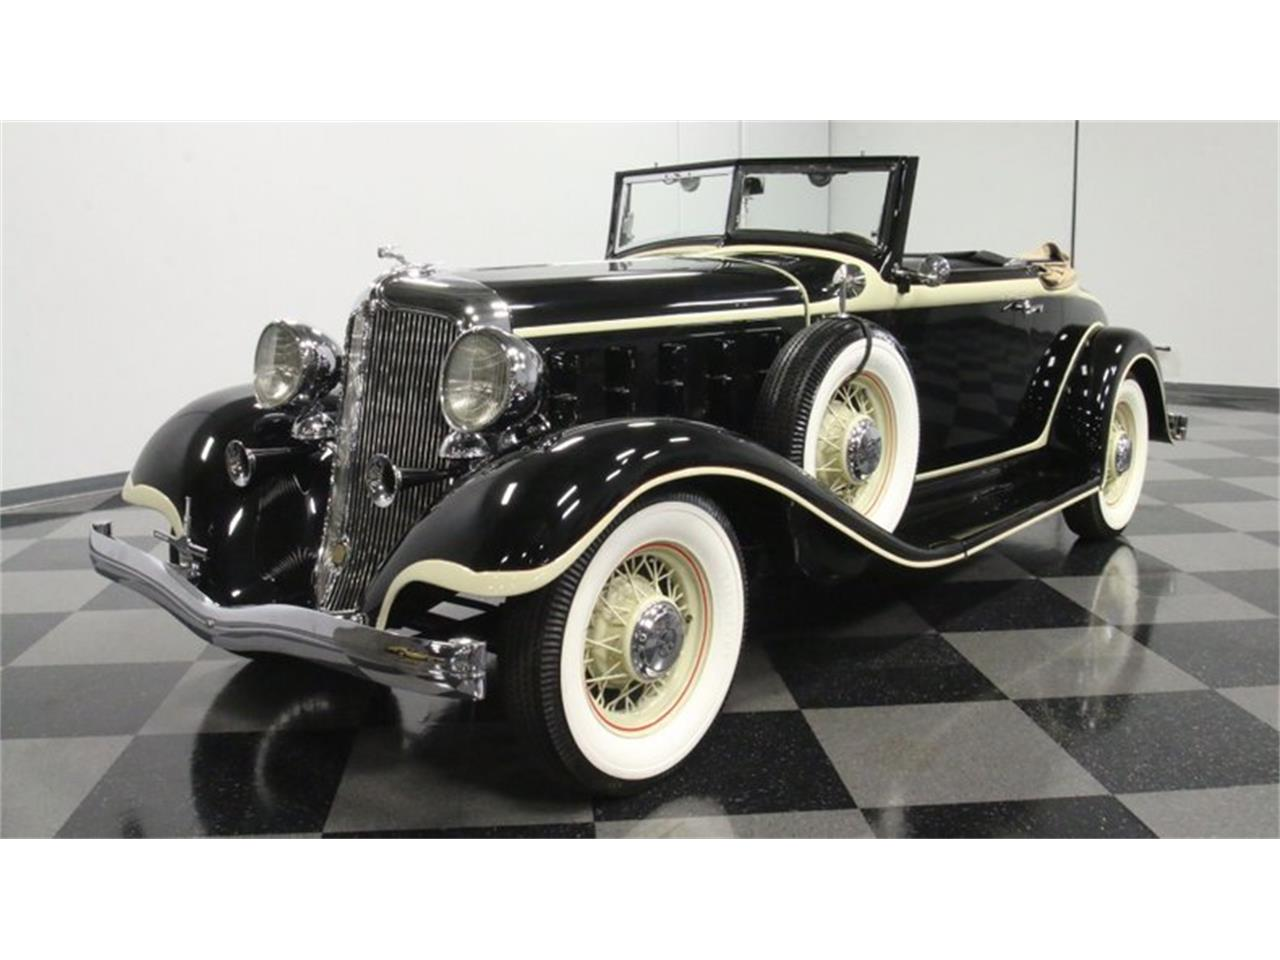 Large Picture of '33 Chrysler Imperial located in Georgia - $159,995.00 Offered by Streetside Classics - Atlanta - QPTQ